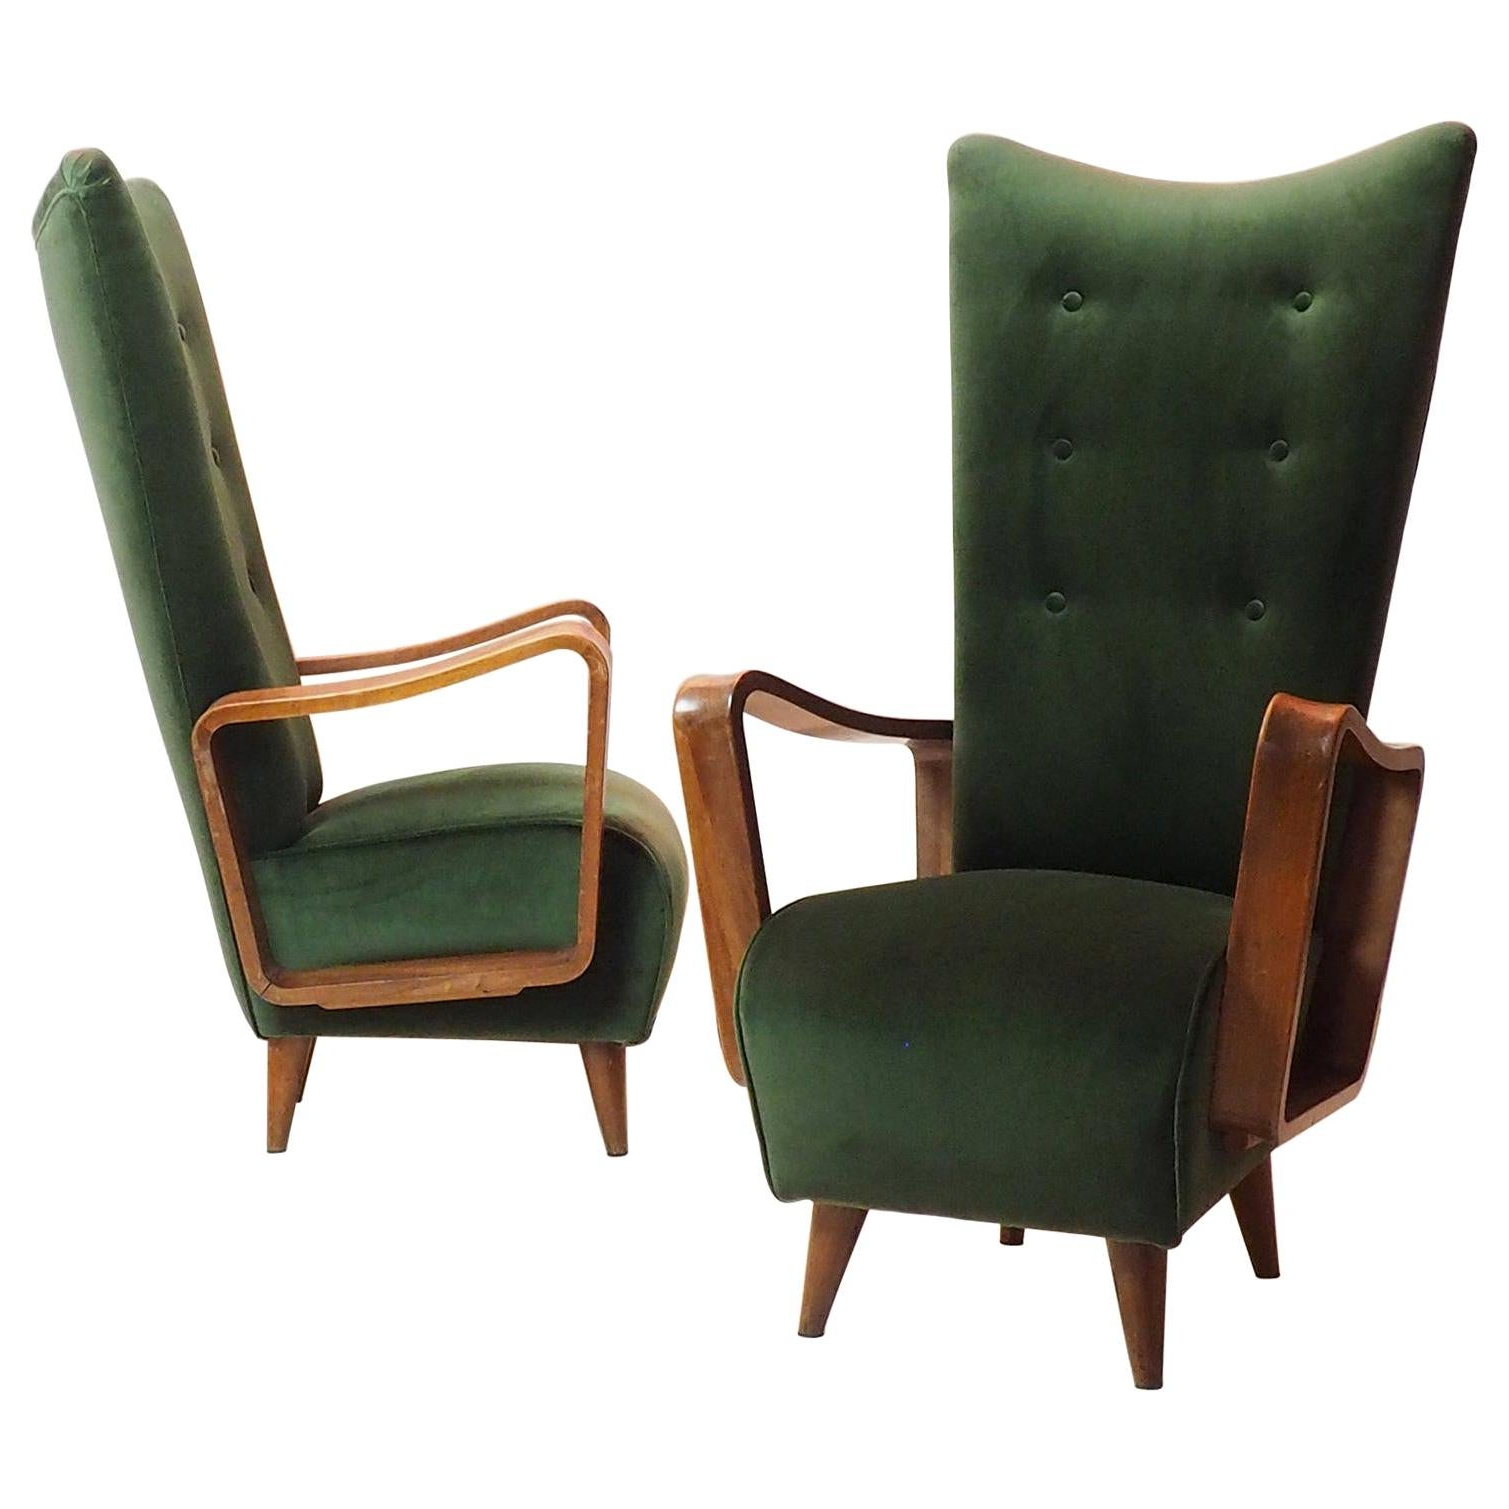 Pitts Armchairs Pertaining To Famous Midcentury High Back Italian Green Armchairspietro Lingeri, Italy 1950s (View 18 of 20)